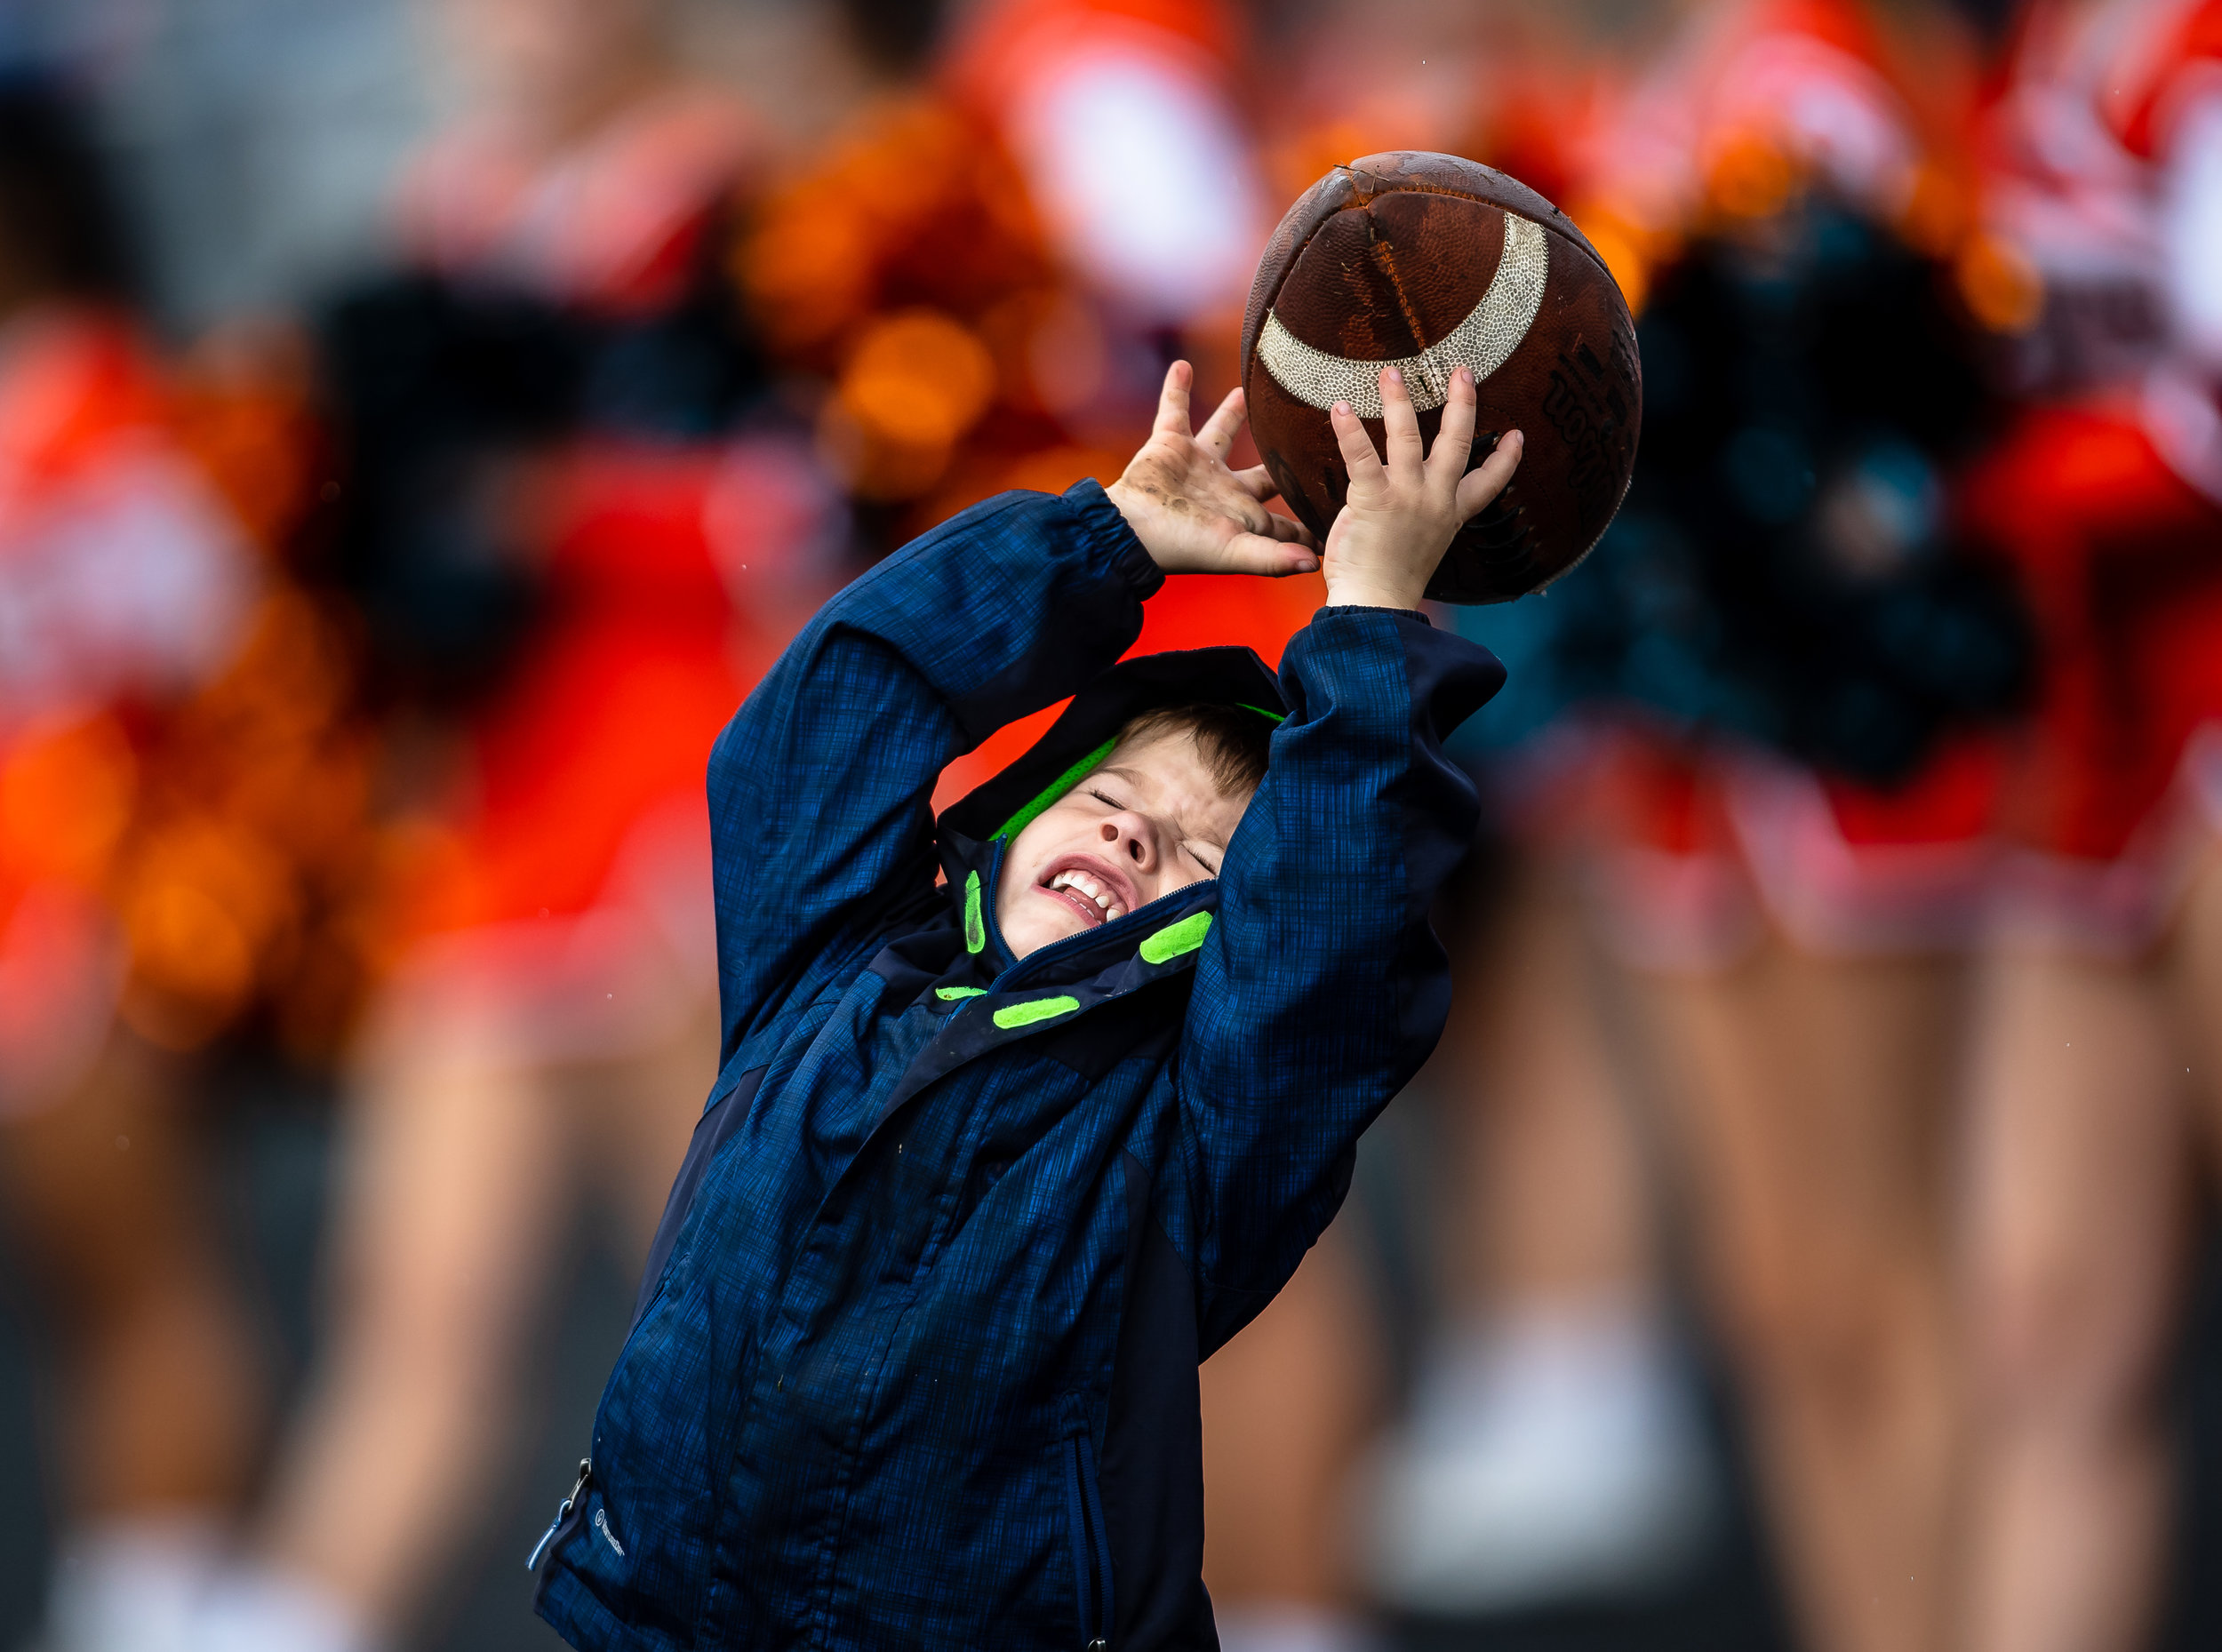 Austin Leonard, 3, catches a pass to himself along the sidelines as Rochester takes on Springfield at Memorial Stadium, Saturday, Oct. 6, 2018, in Springfield, Ill. [Justin L. Fowler/The State Journal-Register]